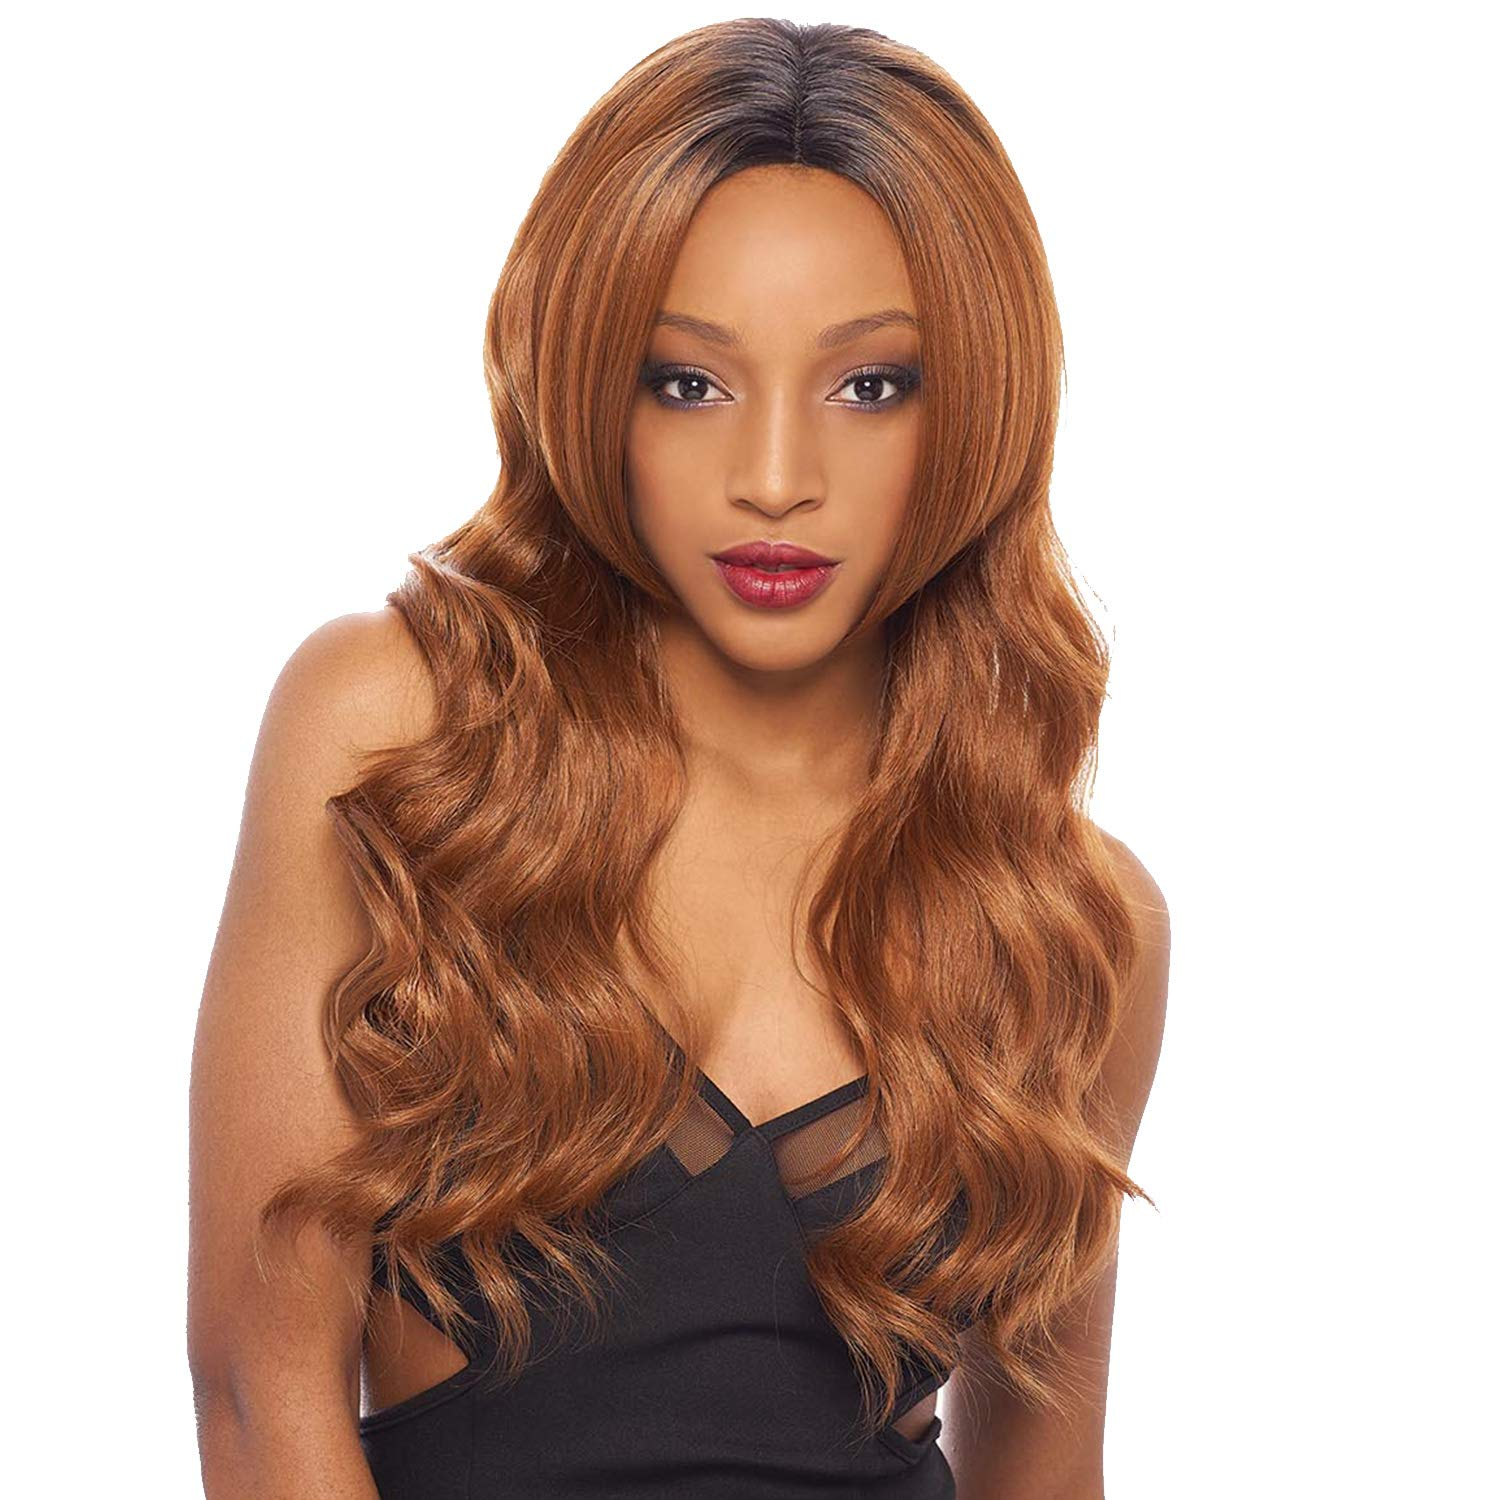 Janet Collection Two Block チープ Lace Wig 激安卸販売新品 - CIARA Je 1 2 Style in